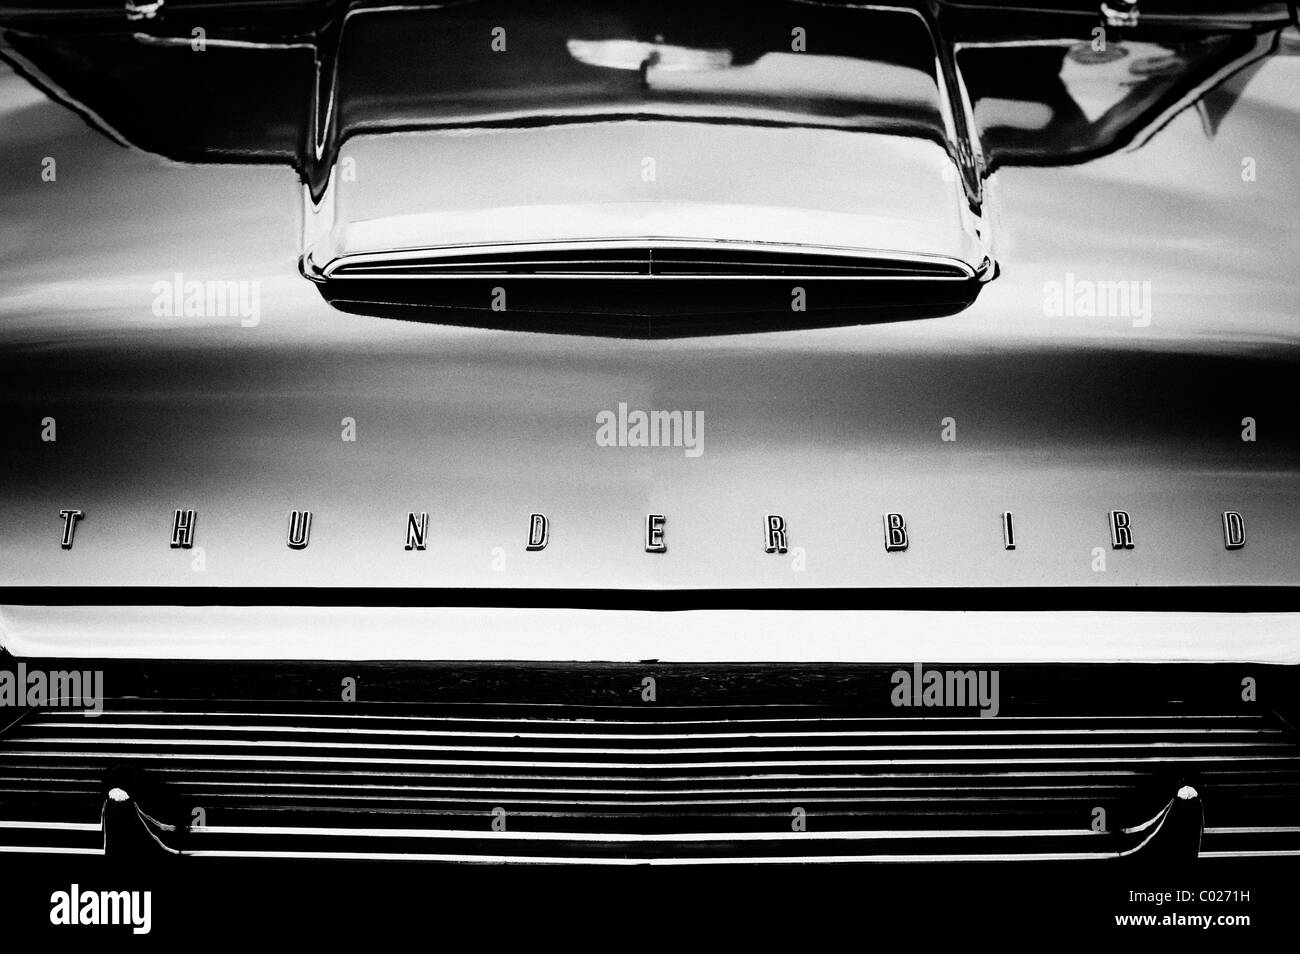 Ford thunderbird front end. Classic American T bird. Monochrome - Stock Image